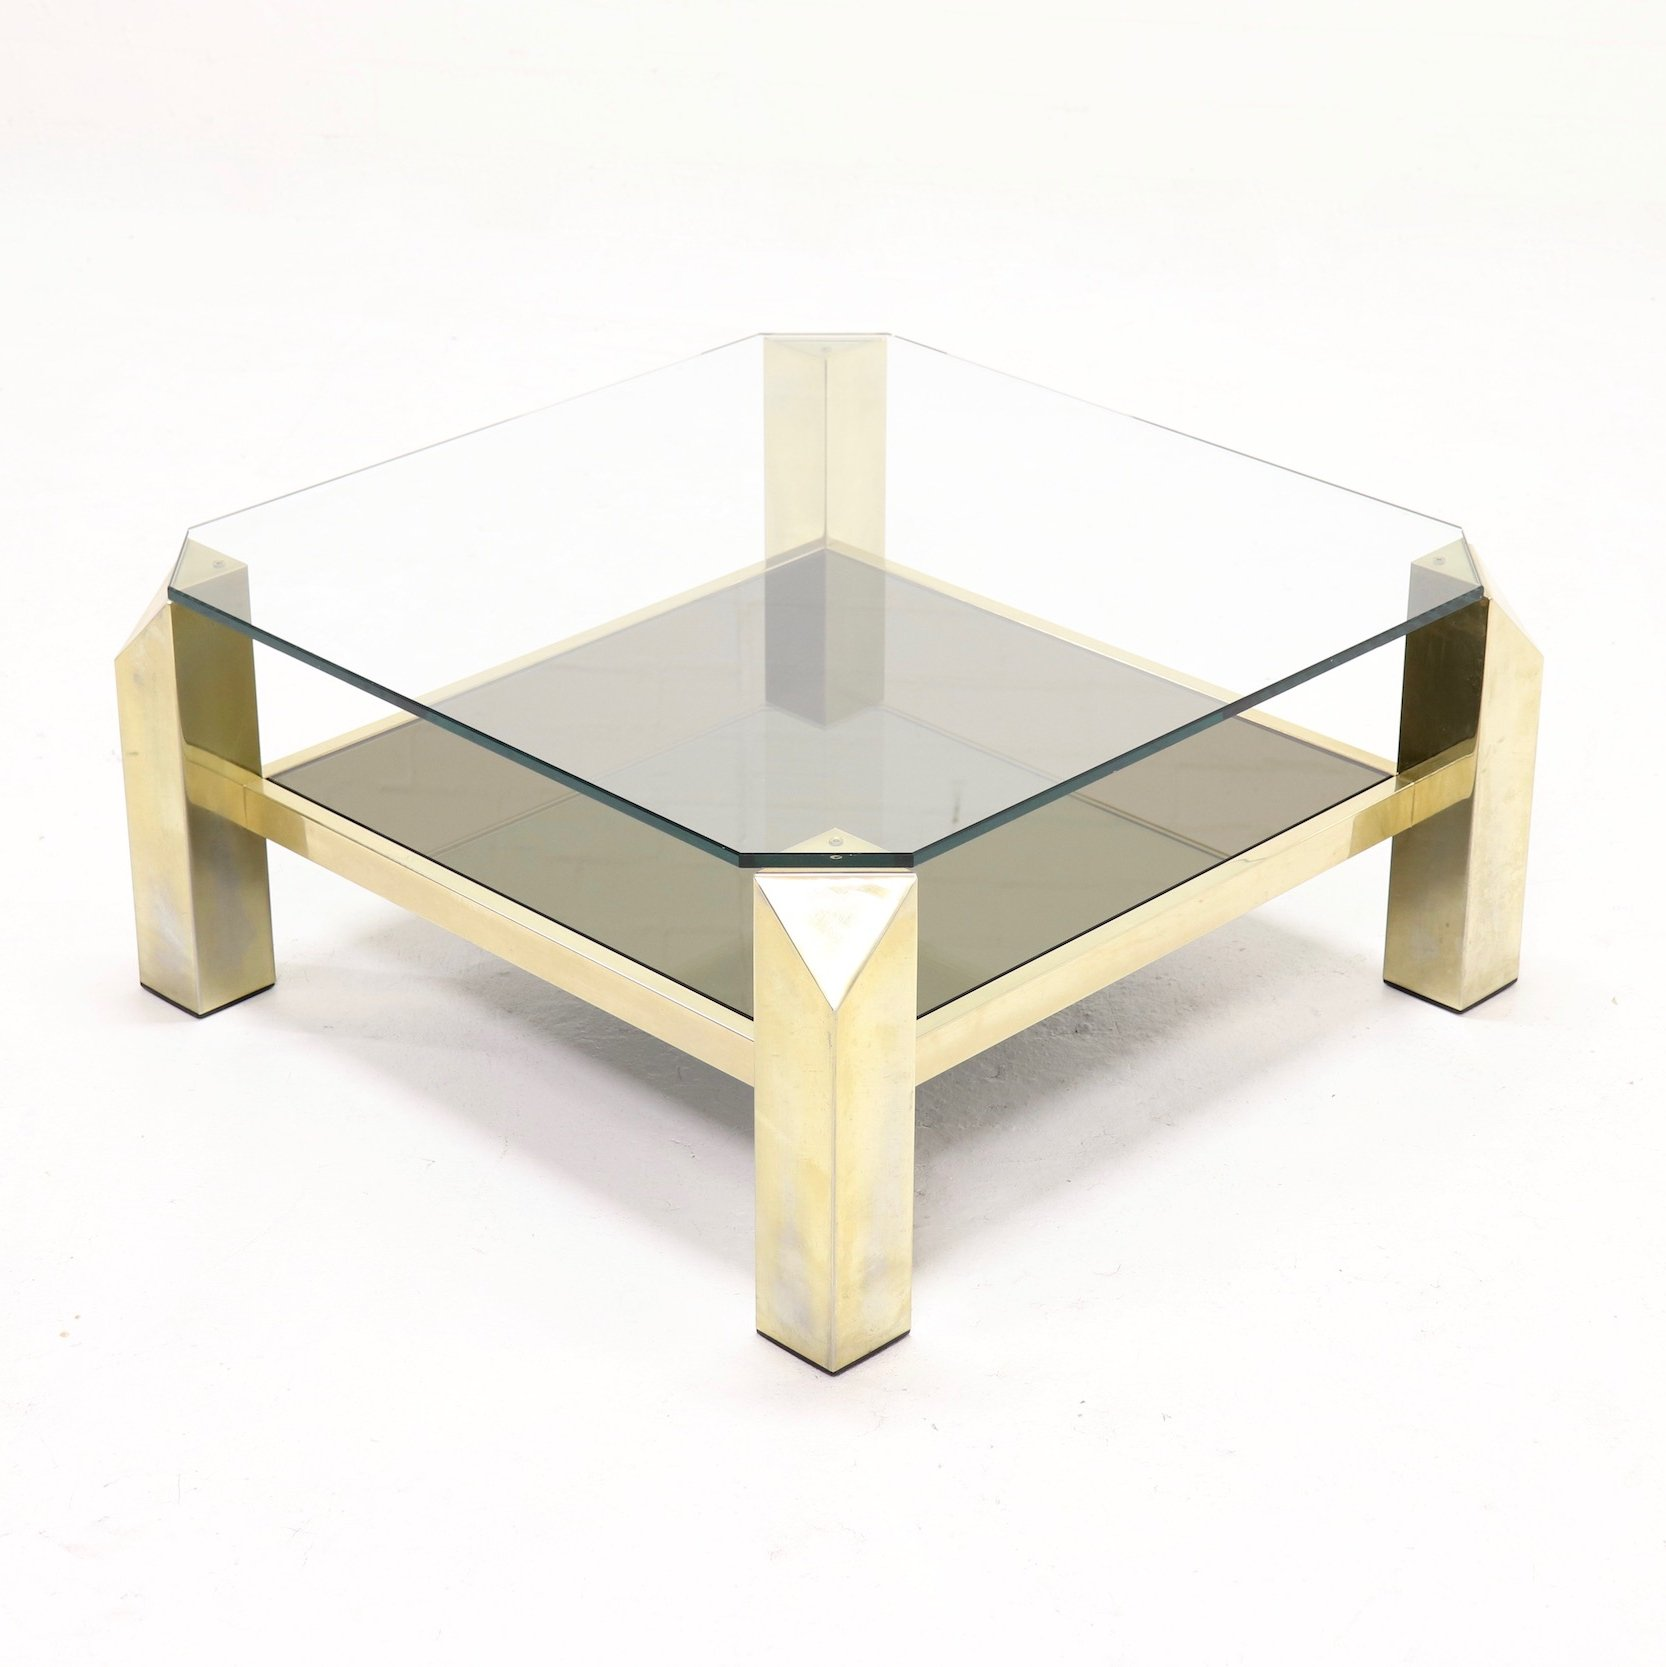 Gold Plated Coffee Table: 23k Gold Plated Coffee Table By Belgo Chrome, 1970s